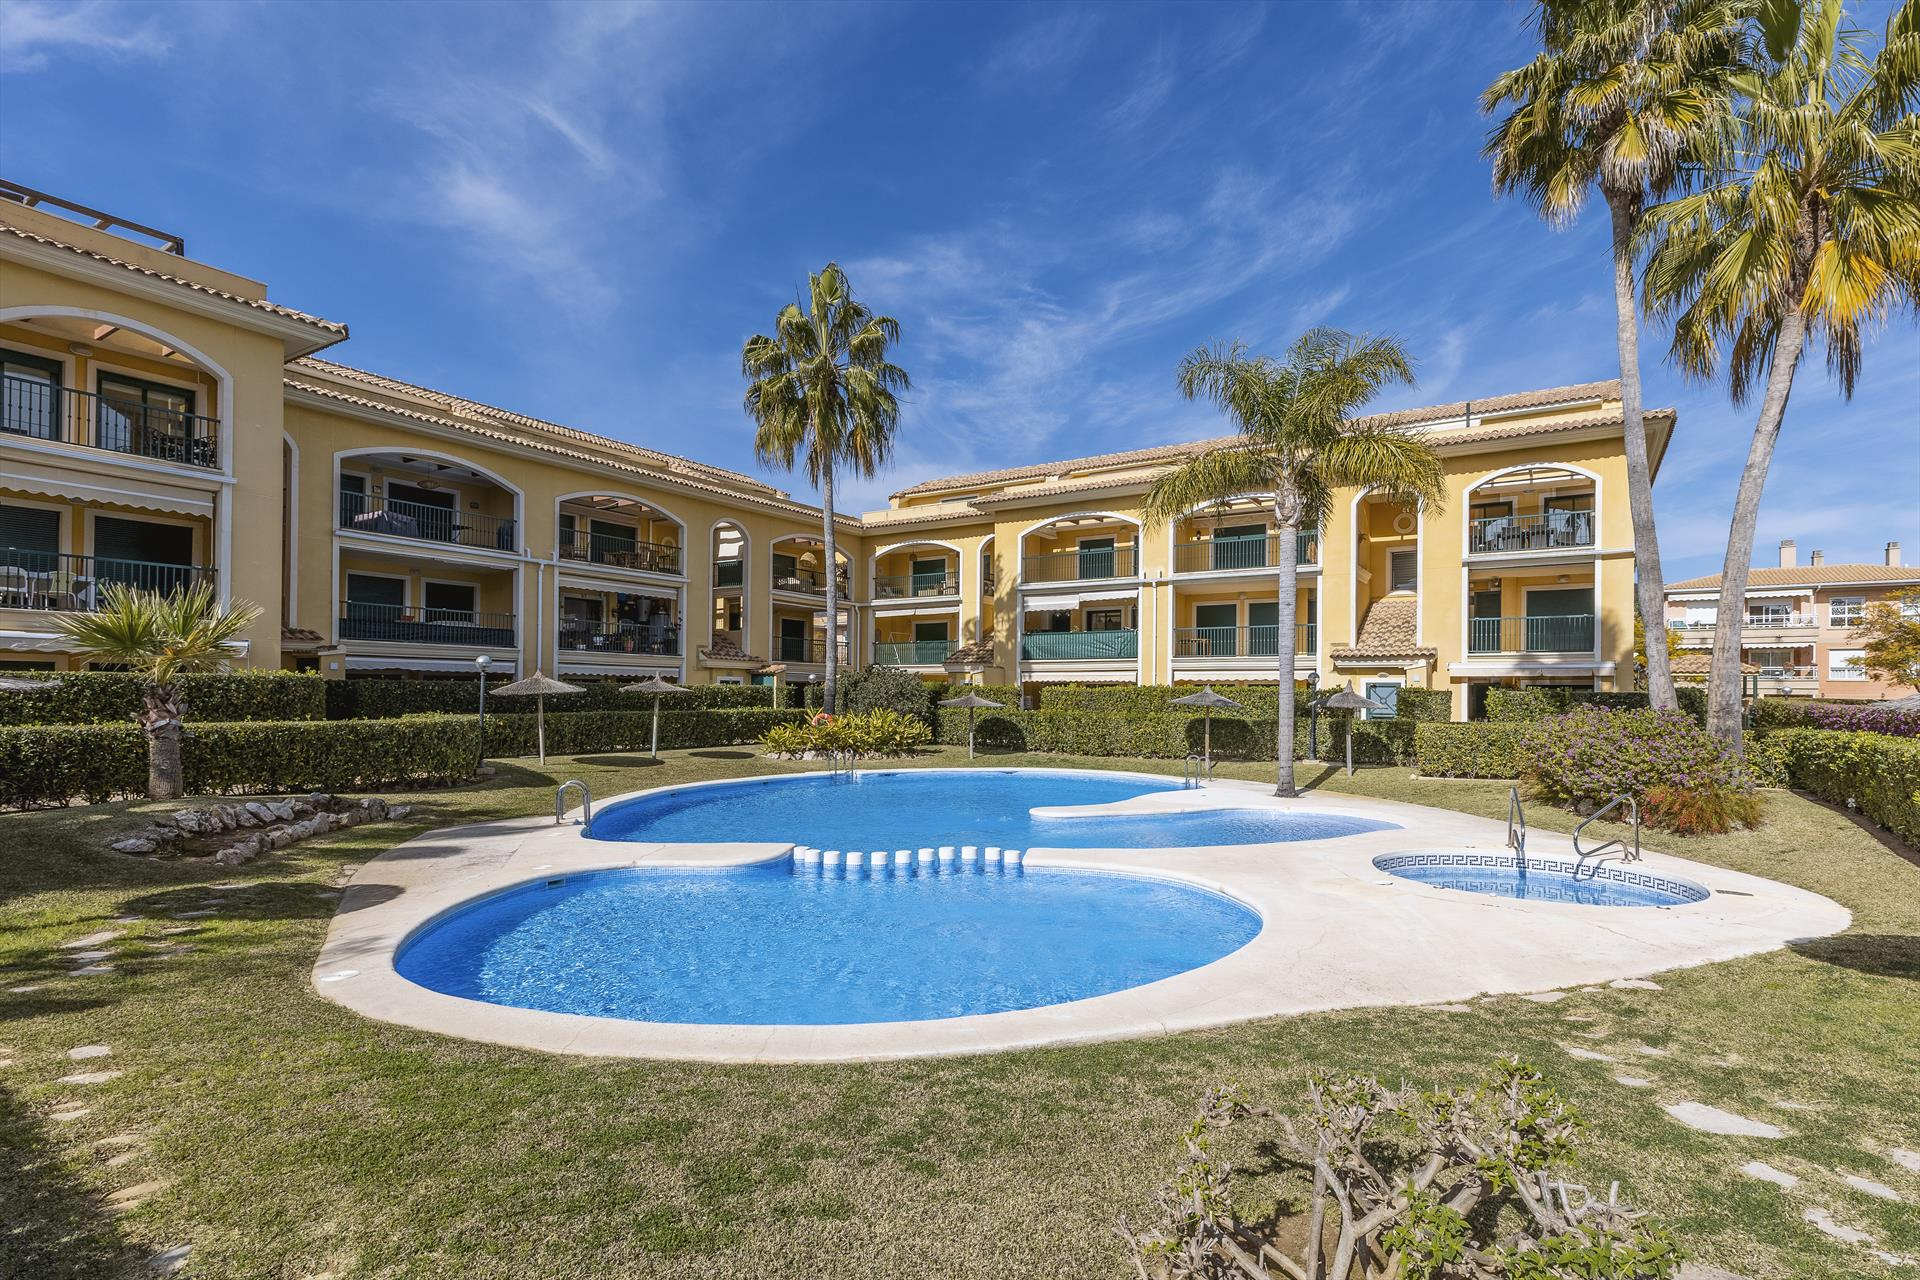 Luz de Javea 4 pax, Beautiful and comfortable apartment in Javea, on the Costa Blanca, Spain  with communal pool for 4 persons...